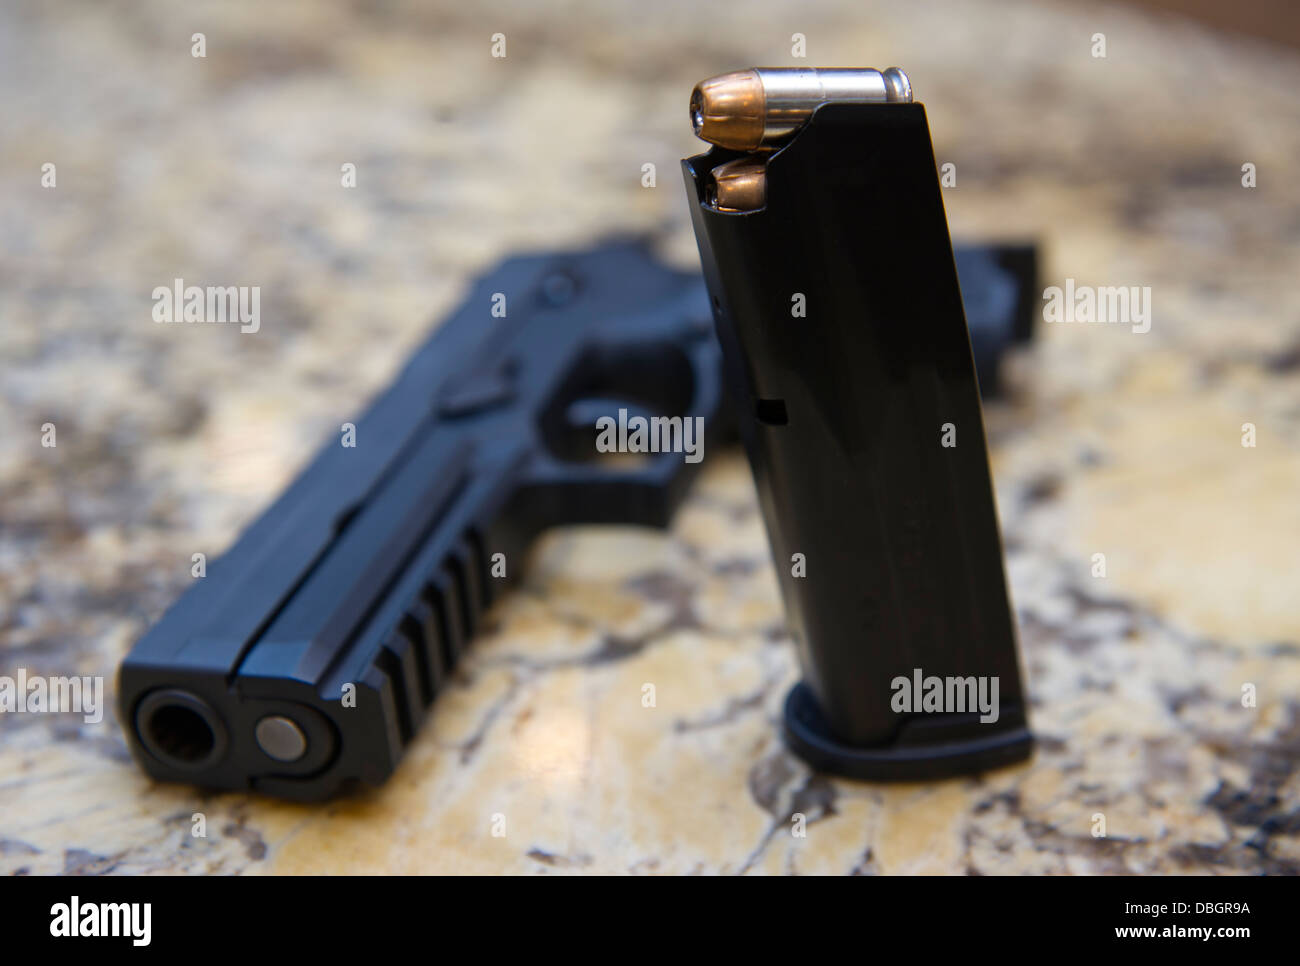 A Sig Sauer P250 gun being kept as a protection against intruders at a private home, Santa Ana, California Stock Photo